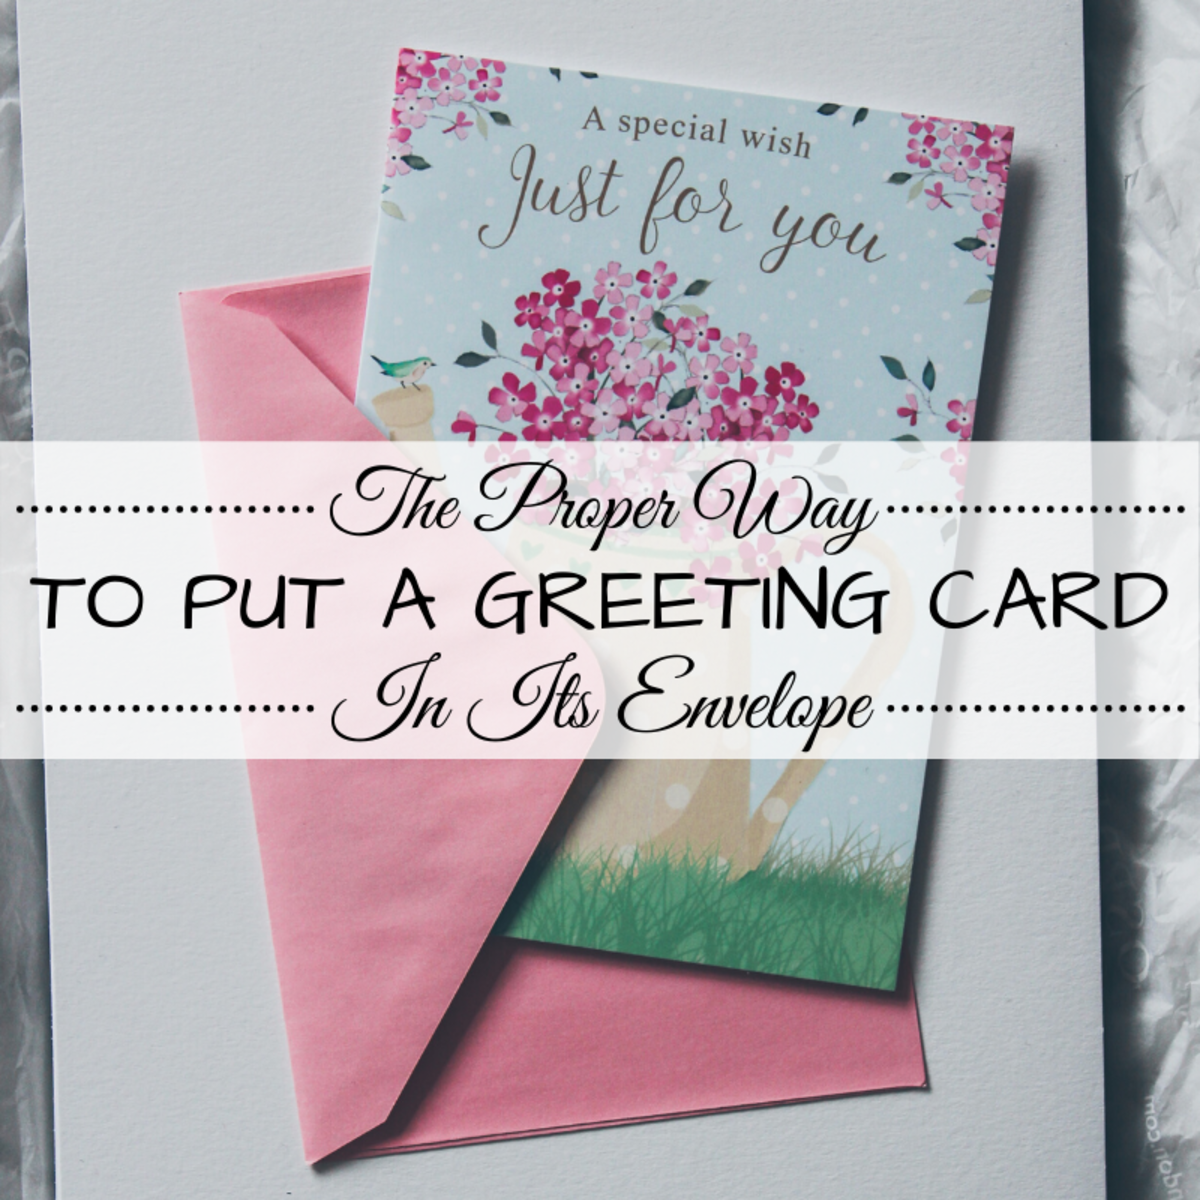 The Correct Way to Put a Greeting Card in an Envelope